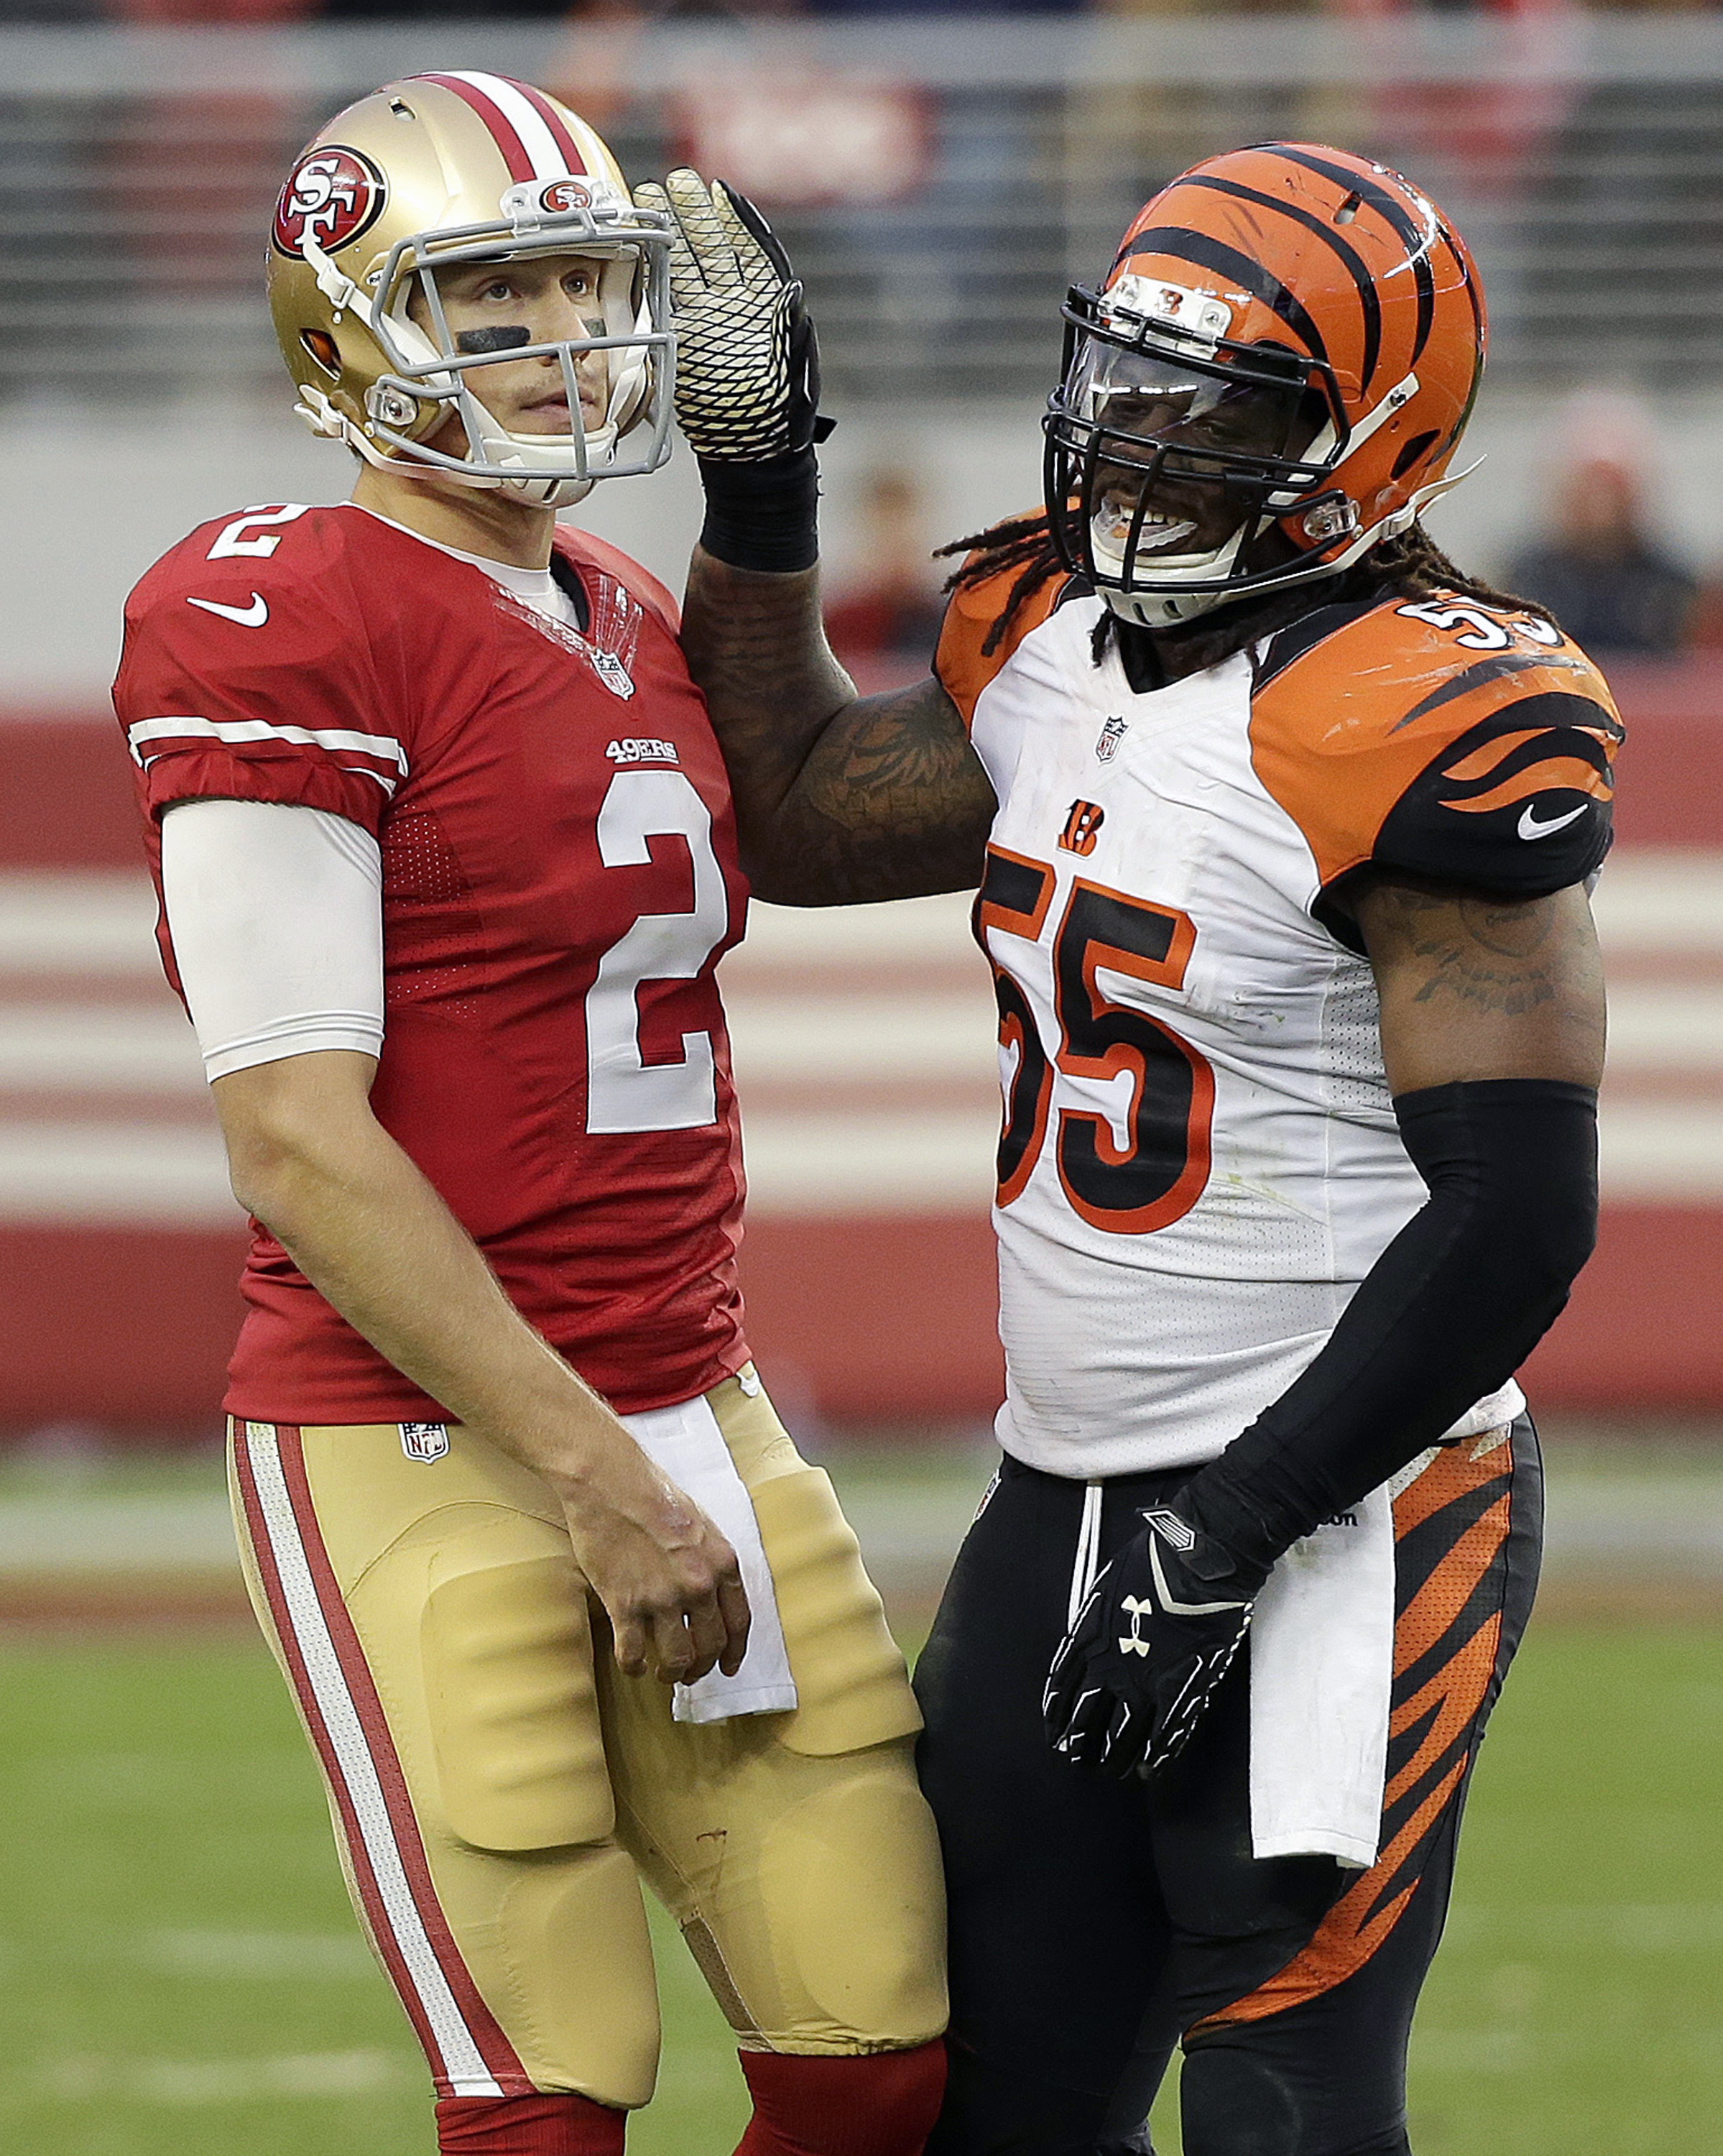 Cincinnati Bengals outside linebacker Vontaze Burfict (55) approaches San Francisco 49ers quarterback Blaine Gabbert (2) during the second half of an NFL football game in Santa Clara, Calif., Sunday, Dec. 20, 2015. (AP Photo/Eric Risberg)